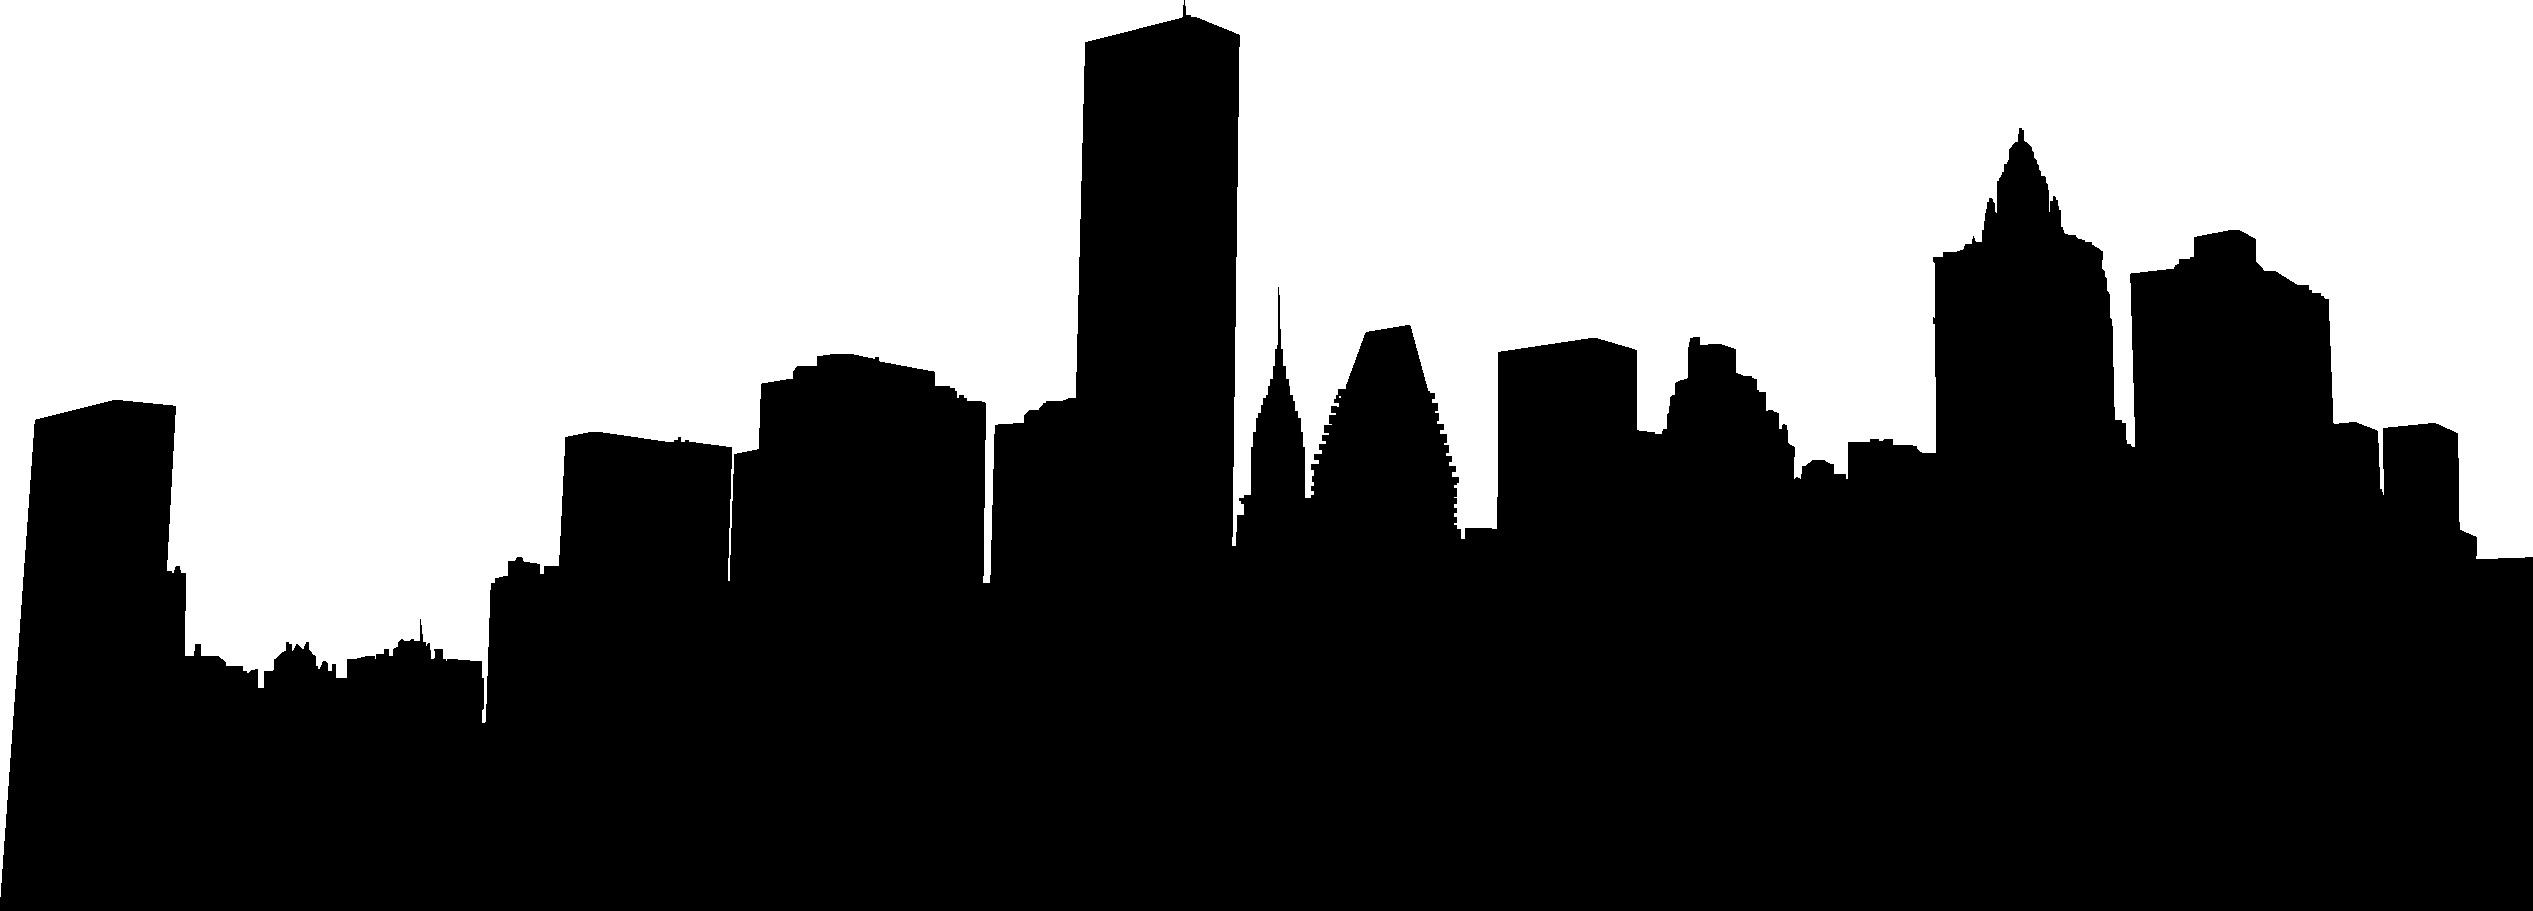 2533x911 Philadelphia Skyline Silhouette Png Images In Collection